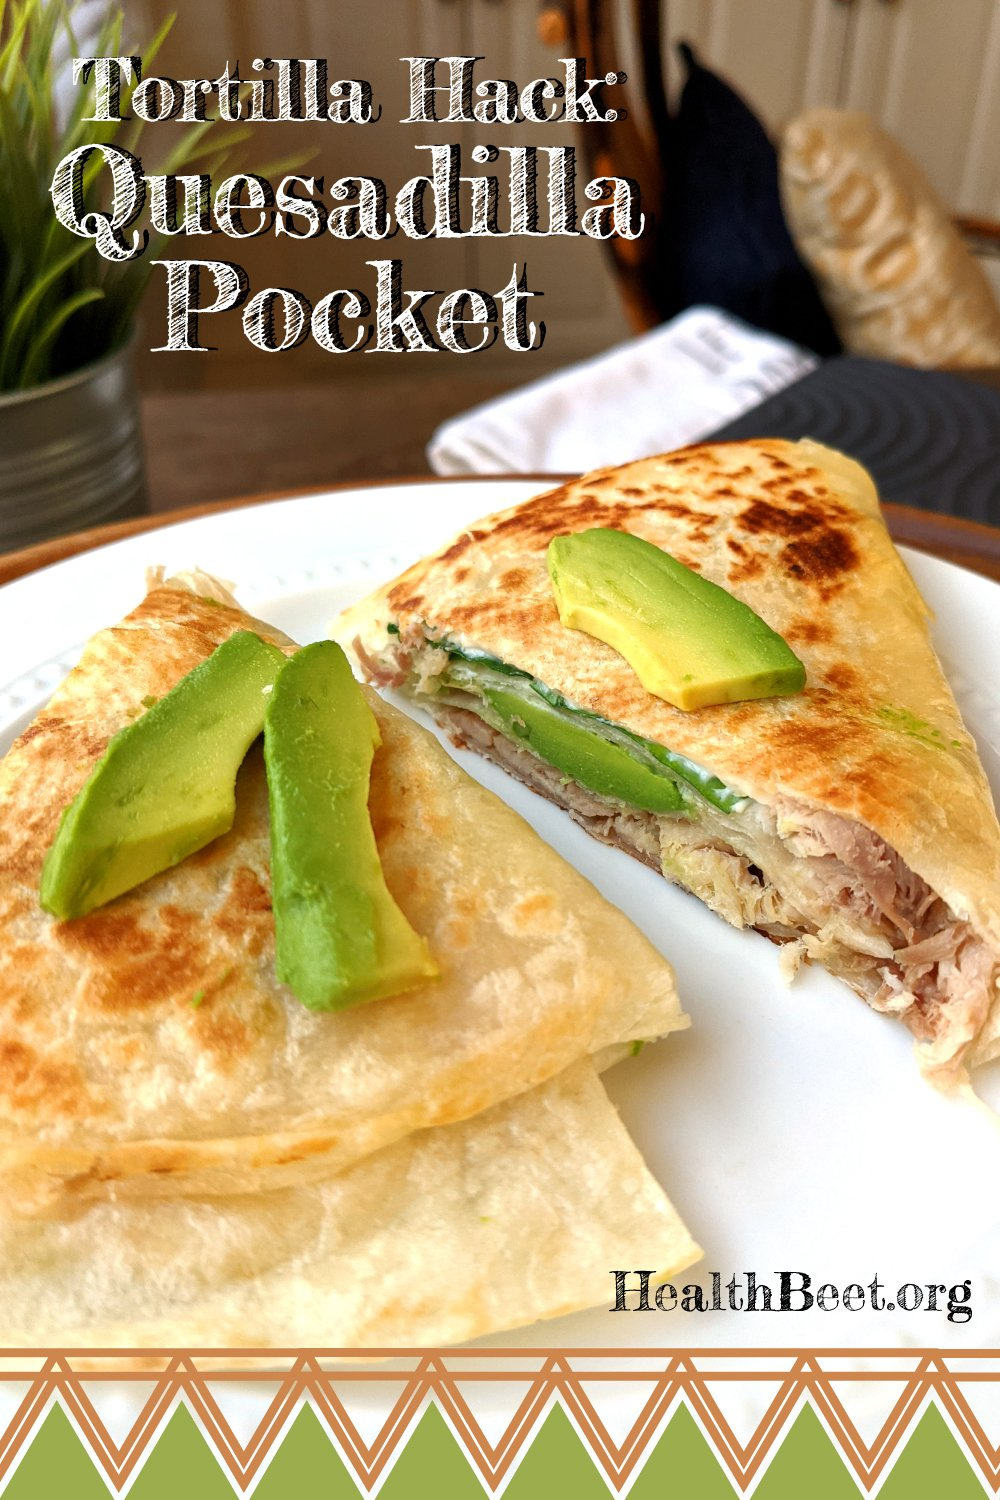 Quesadilla Pocket- The latest food trend from Tiktok Tortilla Hack